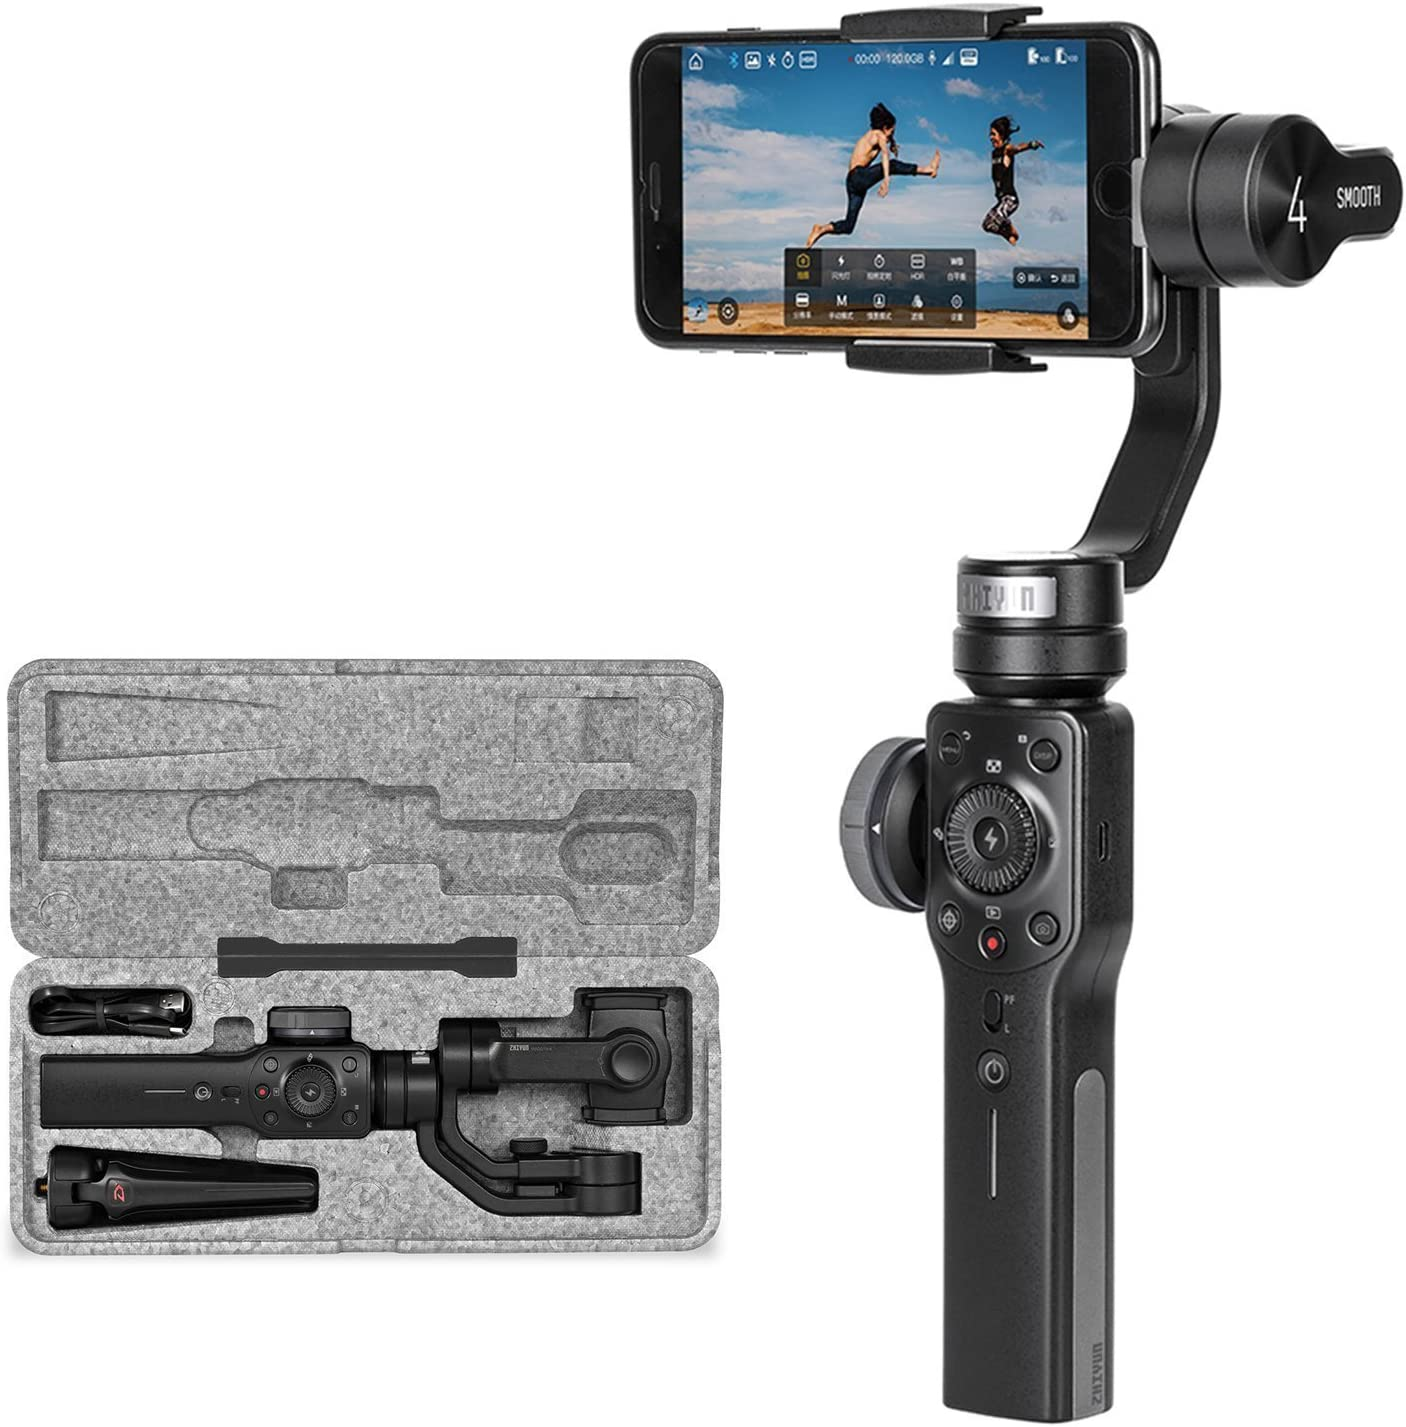 Zhiyun Smooth 4 Estabilizador manual de 3 ejes para teléfonos inteligentes como iPhone X 8 7 Plus 6 Plus Samsung Galaxy S9 + S9 S8 + S8 S7 S6 Vertigo Shoot Modo Phonego Enfoque Capacidad de tiro zoom